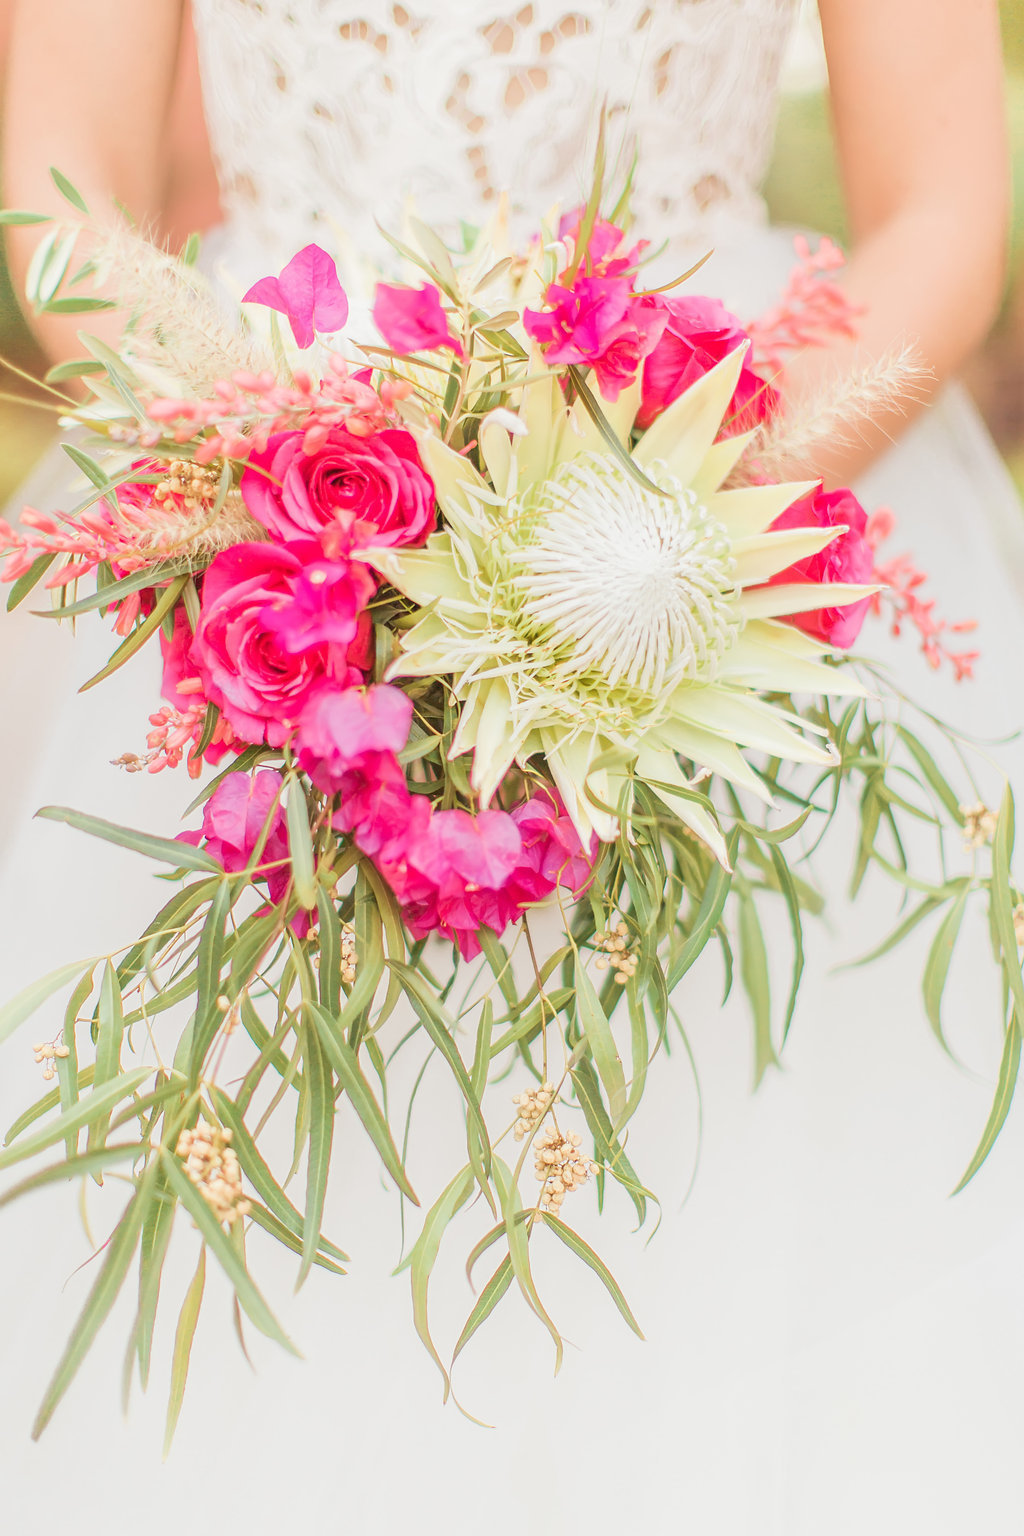 Your-Event-Florist-Arizona-Wedding-Flowers2